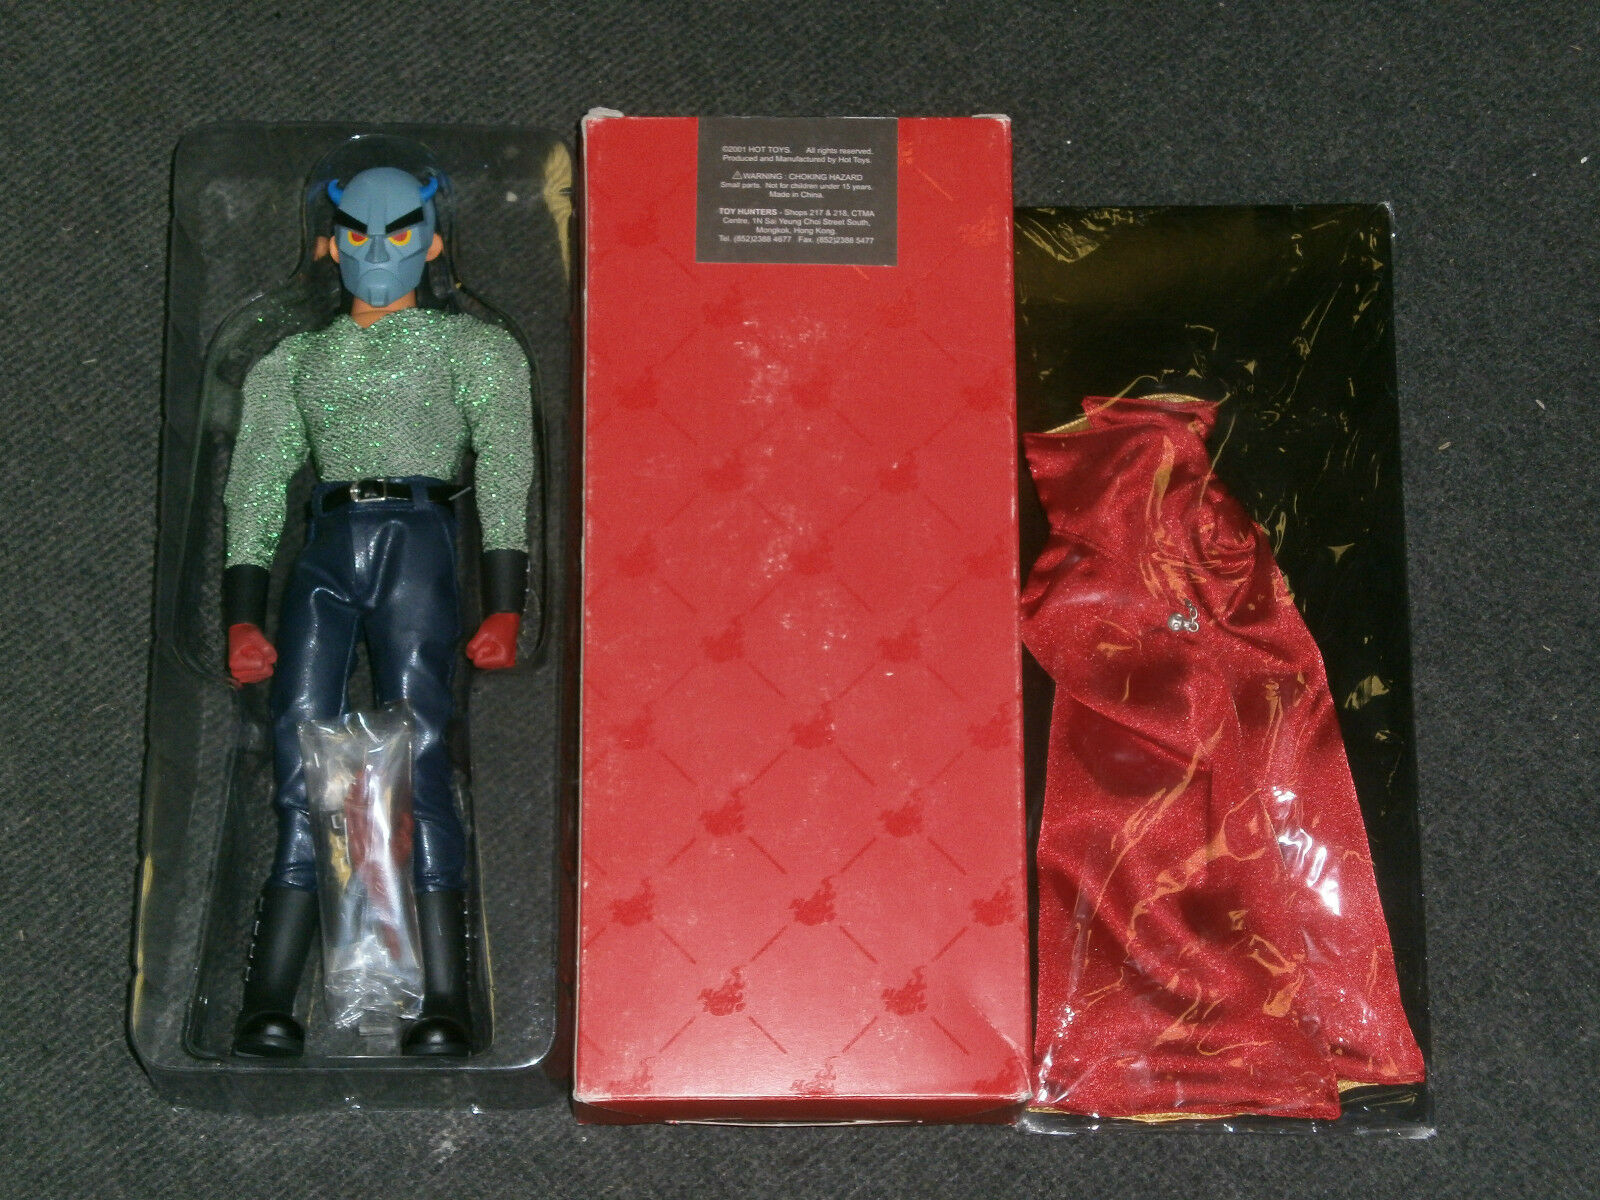 Hot Toys HOT DEVIL Toy Con Exclusive 2001 EricSoArt MIB Lt Ed 1 of 100 RARE